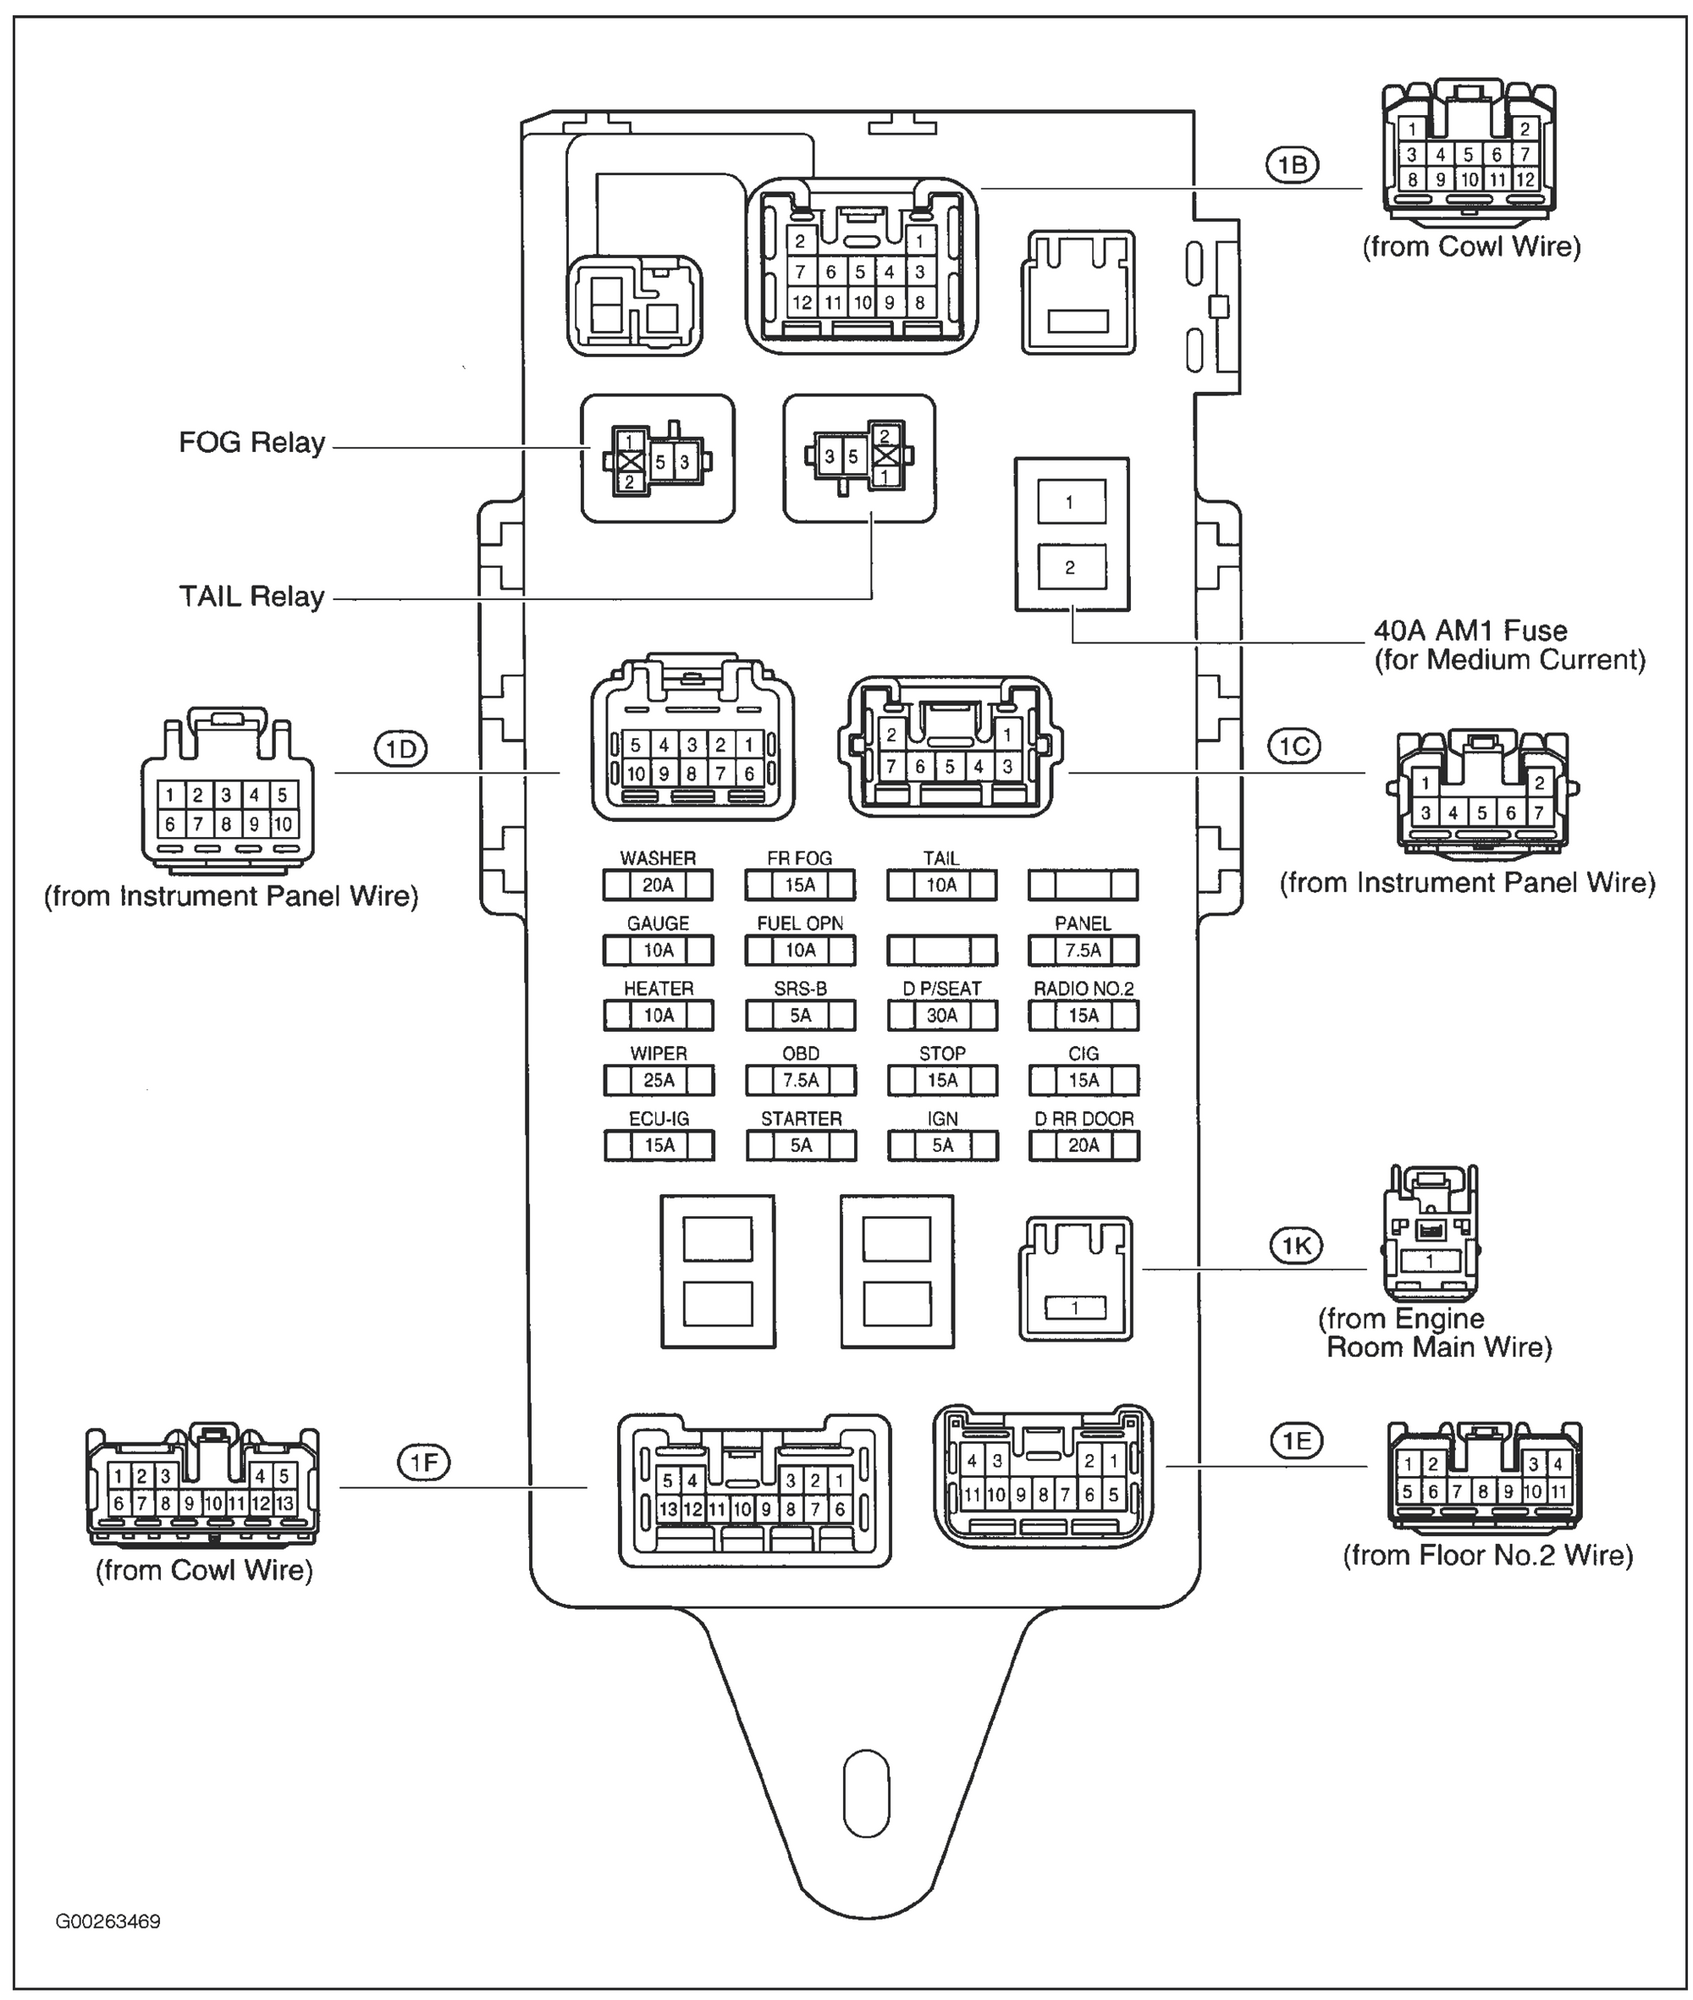 lexus rear defroster wiring diagram schematic great installation lexus power window wiring diagram wiring library rh 94 pgserver de oven wiring schematic refrigerator schematic